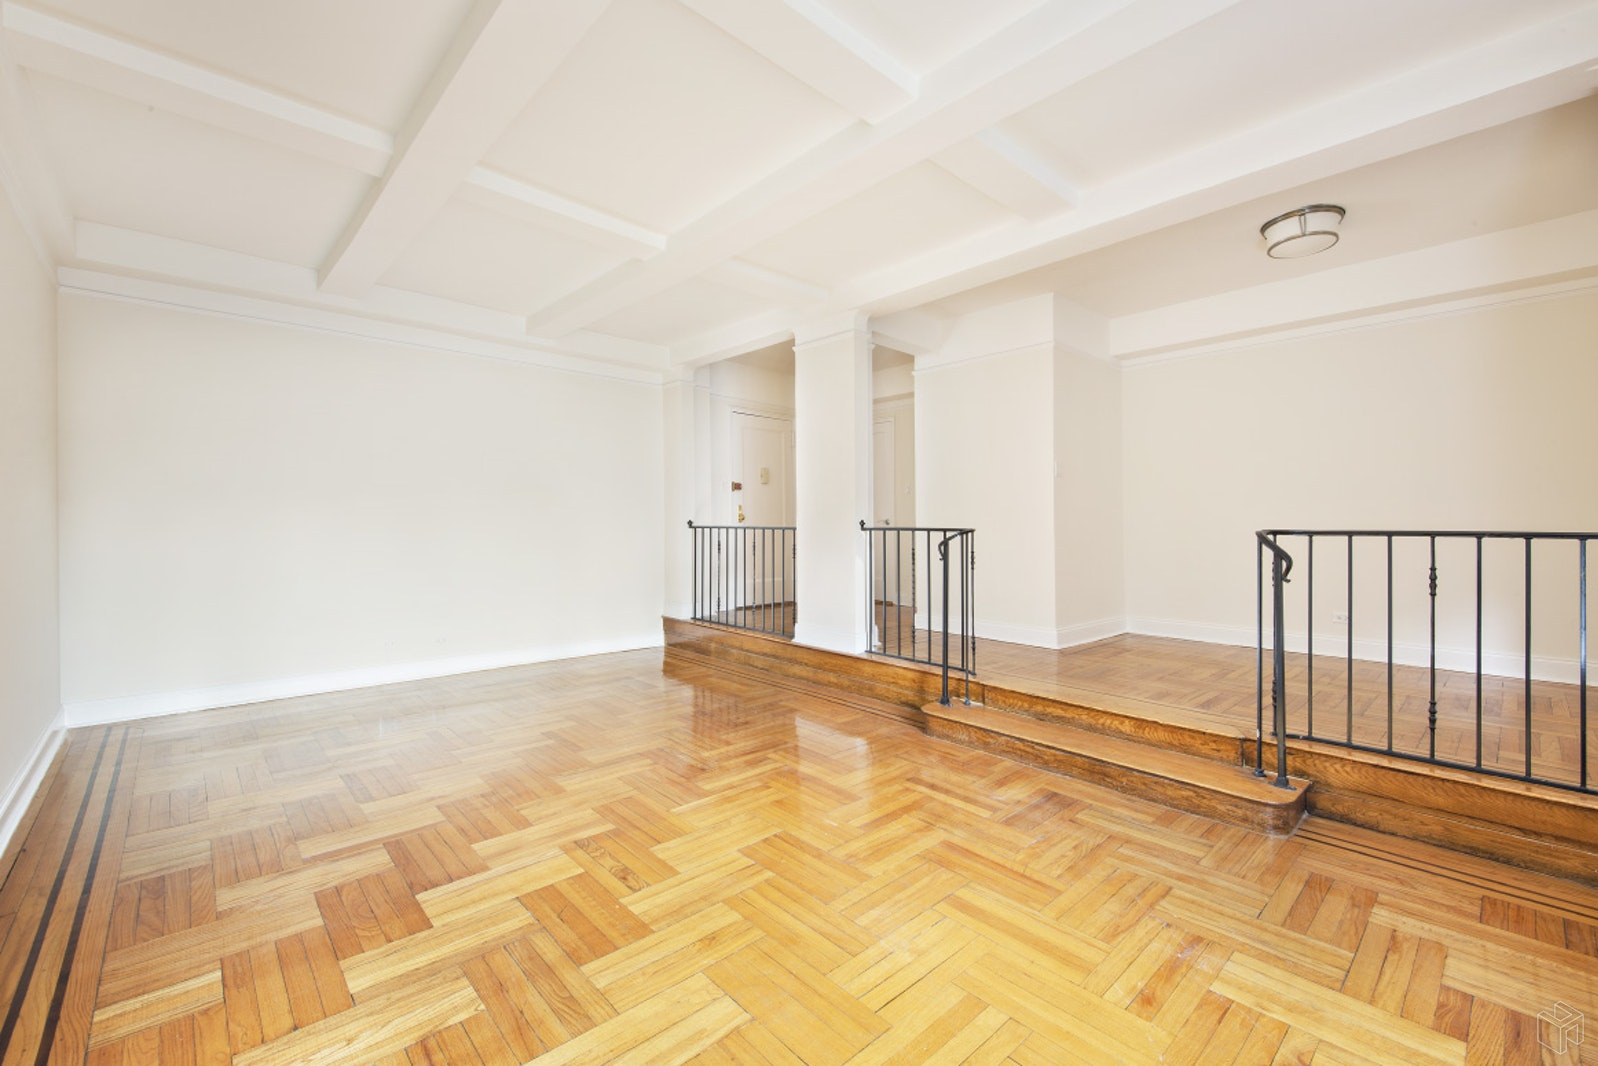 231 East 76th Street, Upper East Side, NYC, 10021, Price Not Disclosed, Rented Property, Halstead Real Estate, Photo 2